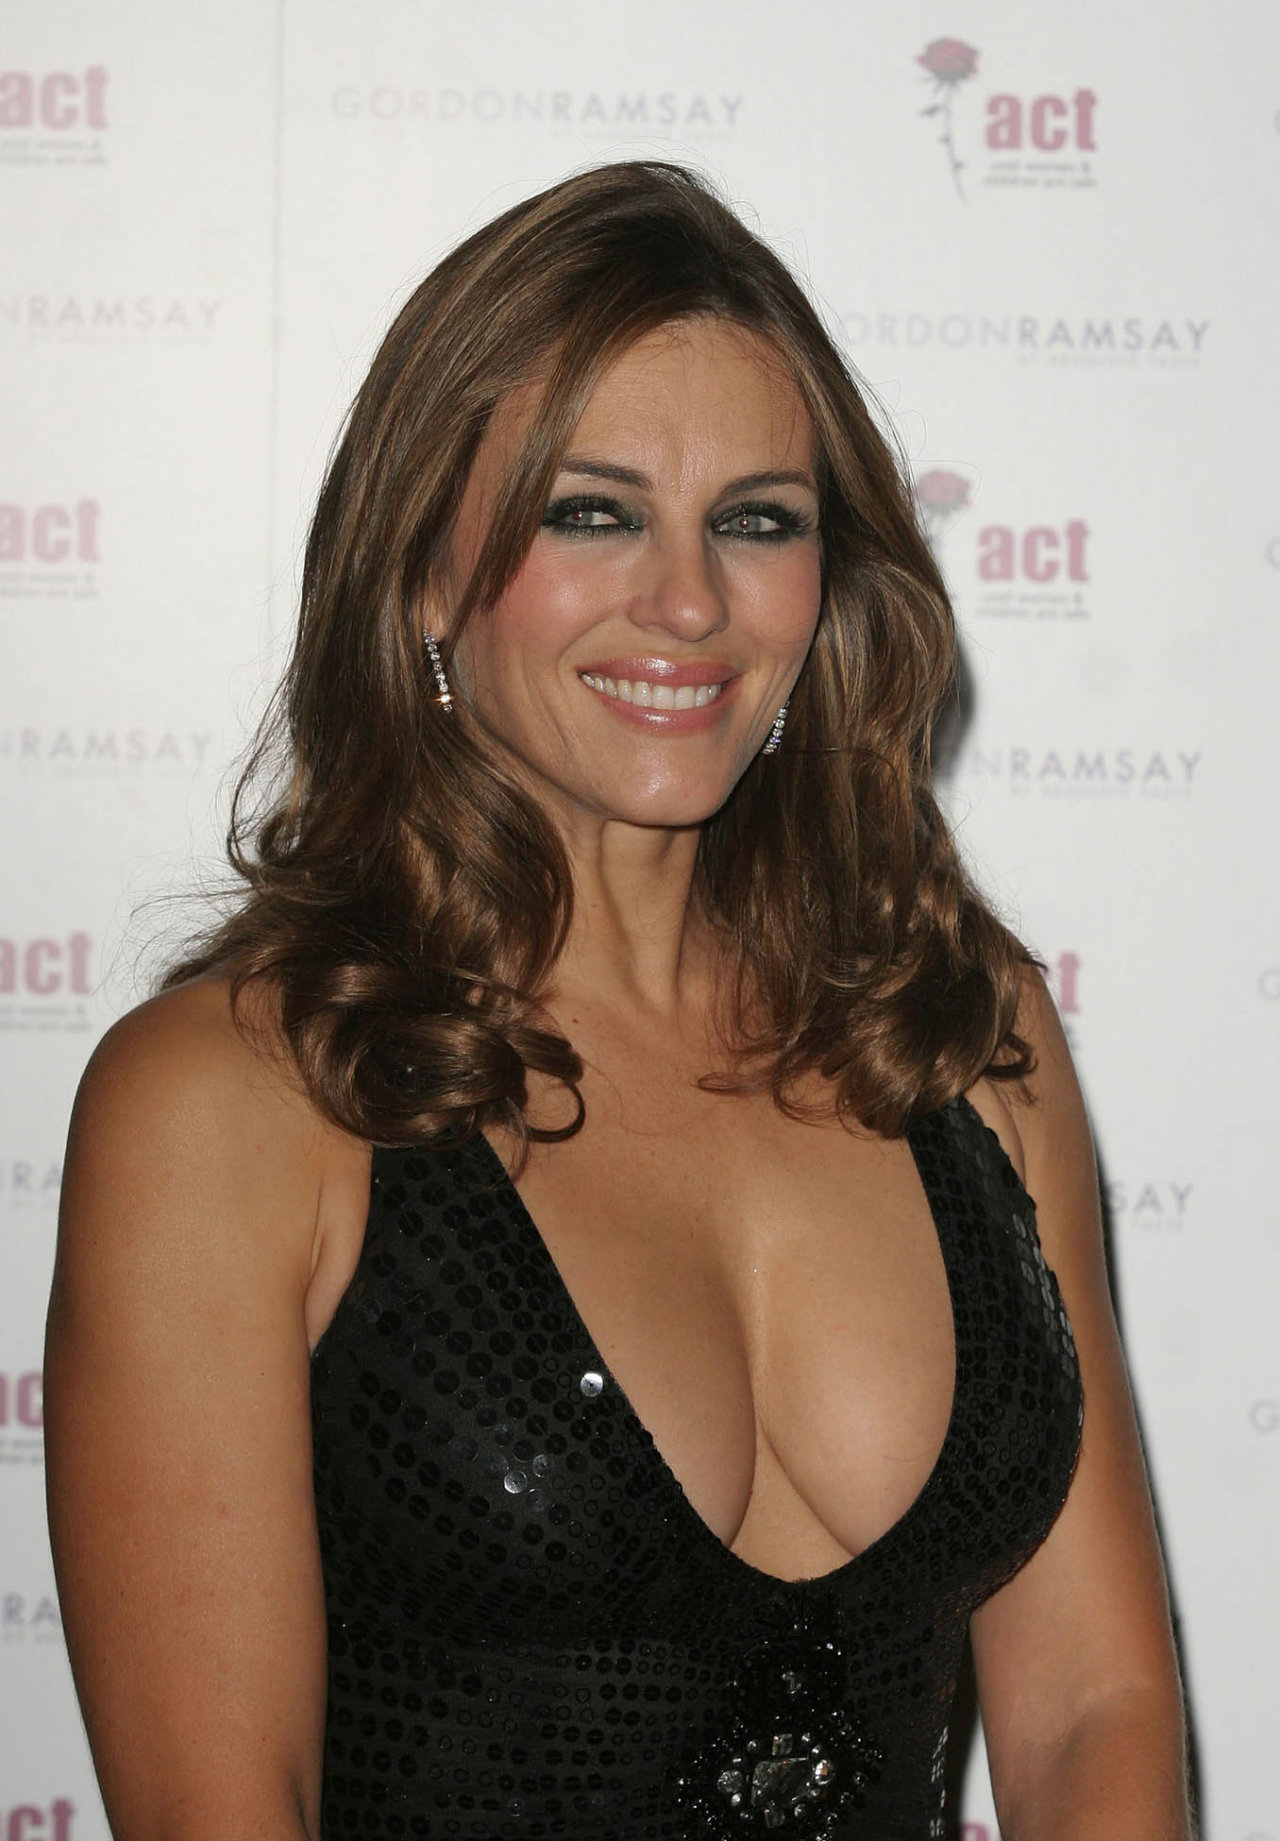 Liz Hurley Gordon And Tana Ramsay's Fundraising Dinner - Arrivals London, England - 18.09.08 Credit: (Mandatory): WENN